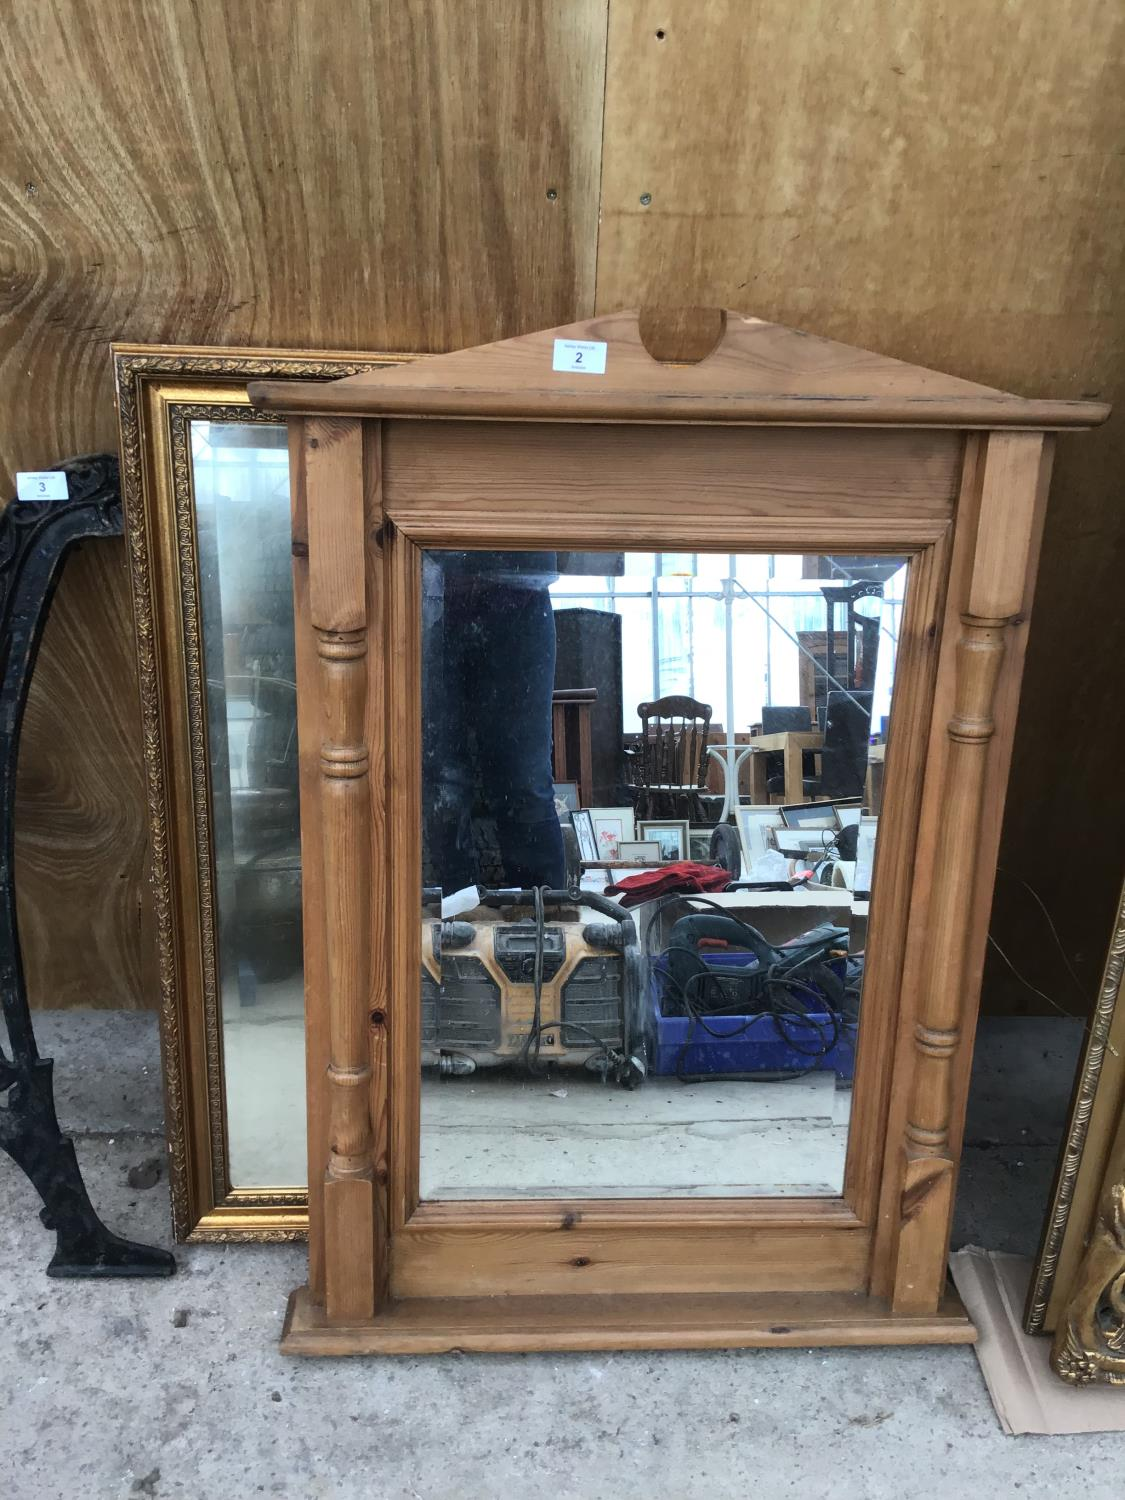 Lot 2 - A PINE FRAMED MIRROR WITH COLUMN SIDES AND AN ORNATE GILT FRAMED MIRROR